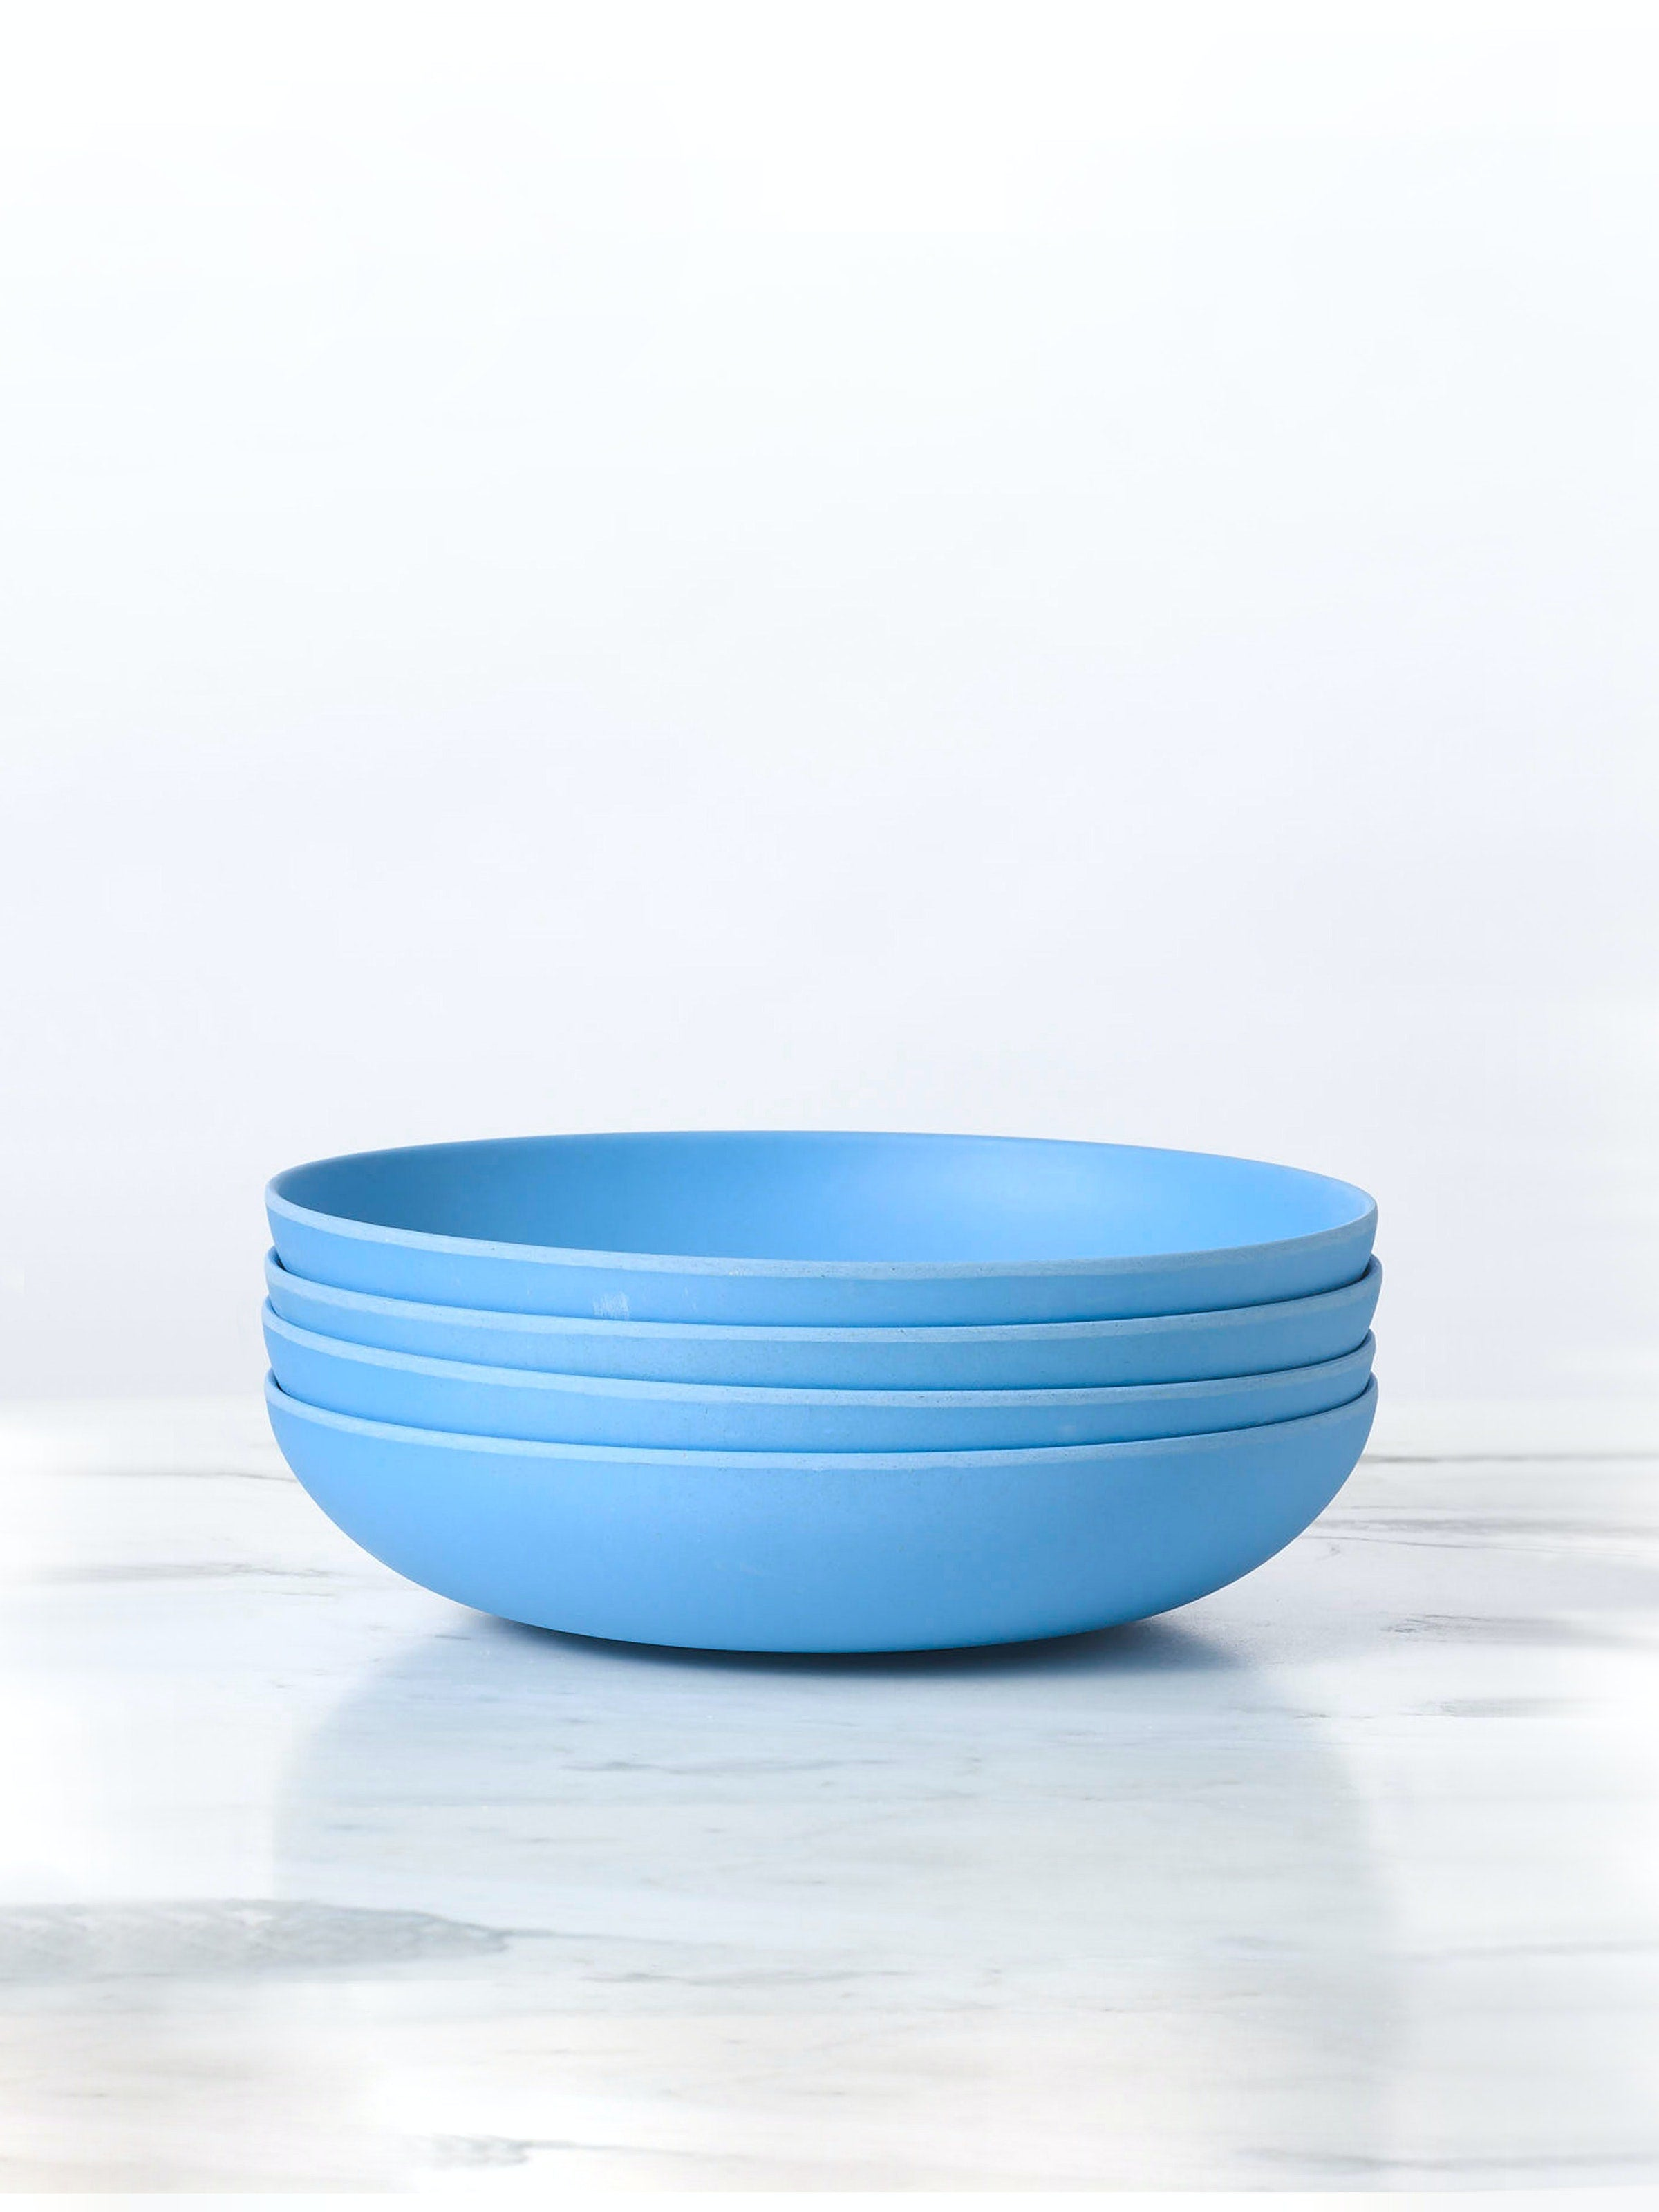 Verishop's Birthday Sale Has Everything You Need for a Dreamy Summer Tablescape